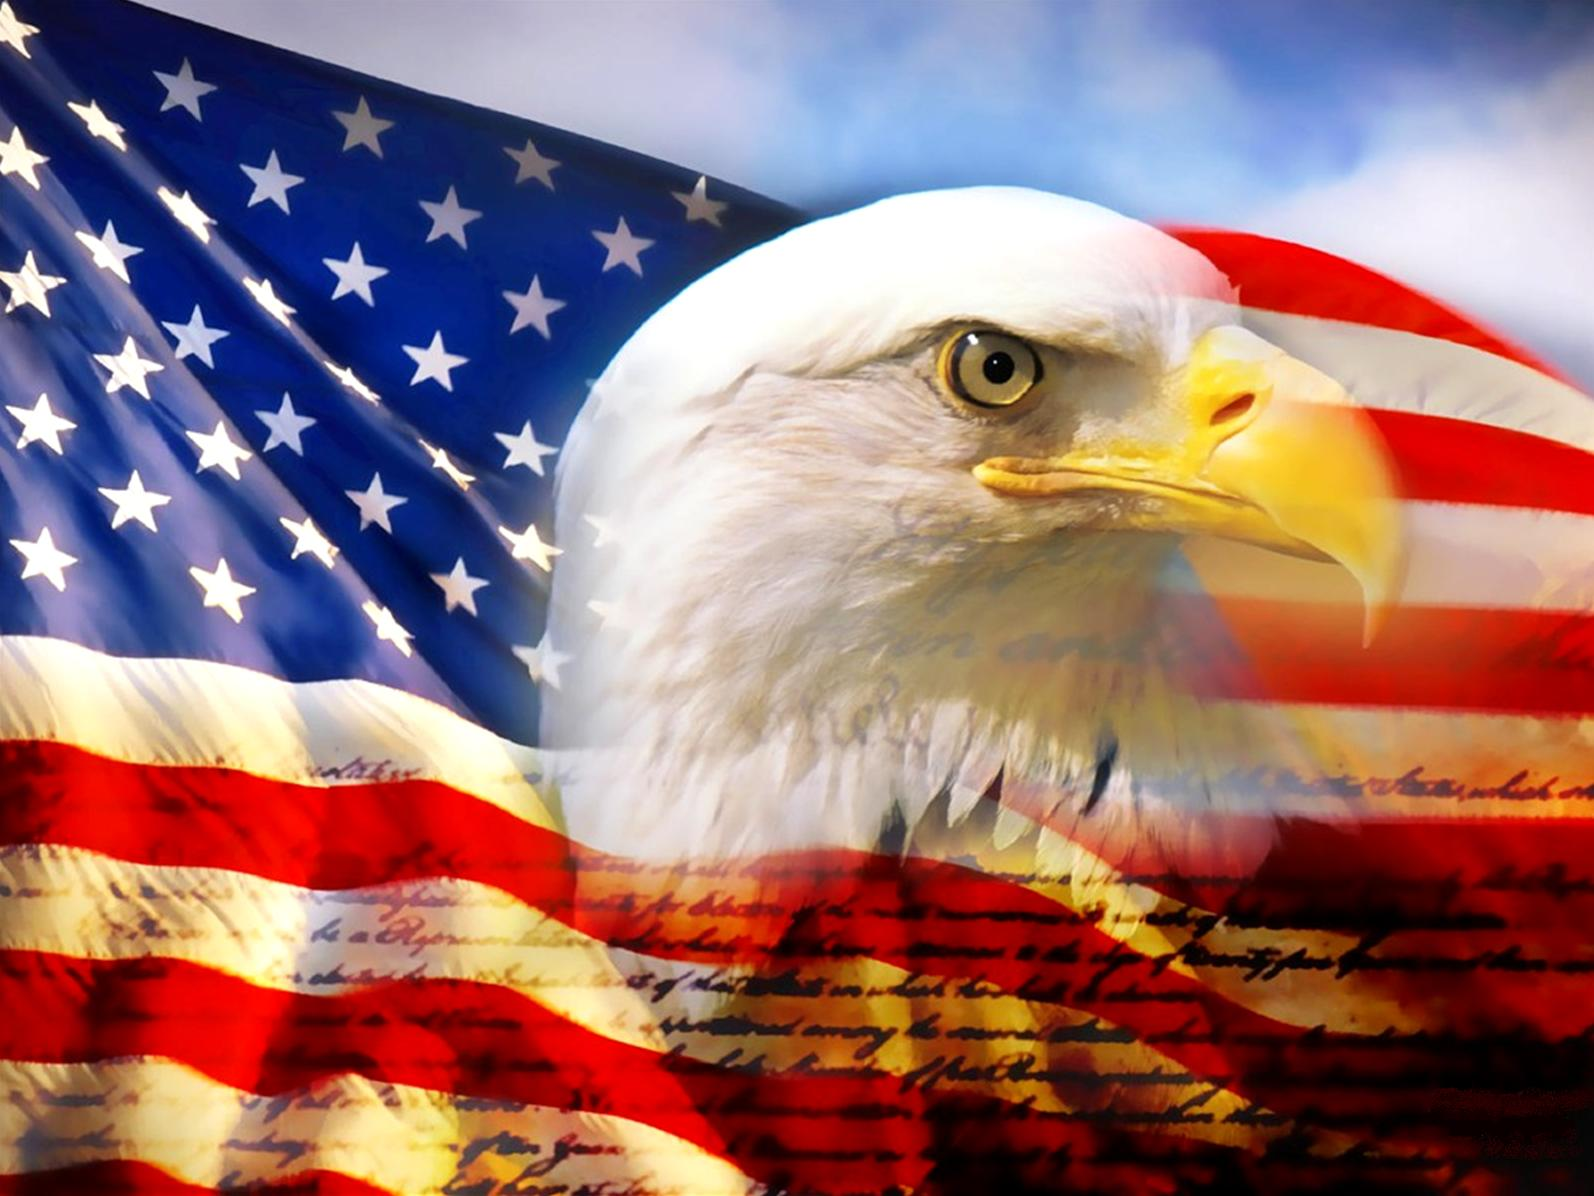 wallpaper of the day: eagle and american flag - common sense